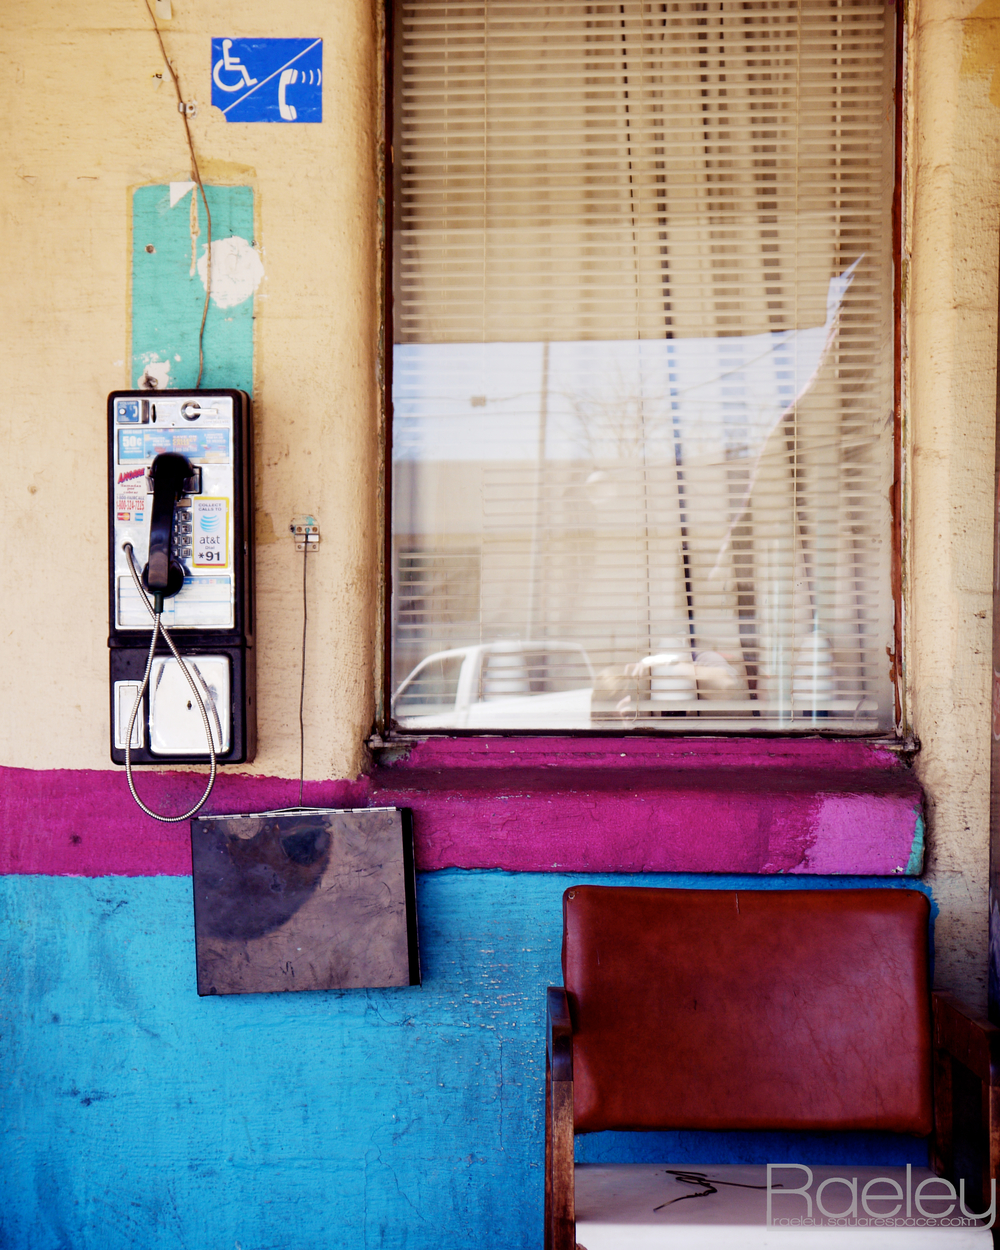 This image helped me win third place and $300 in Tupelo Gumtree Museum's high school Portfolio competition. My favorite thing about this image is the combination of colors and rectangles.